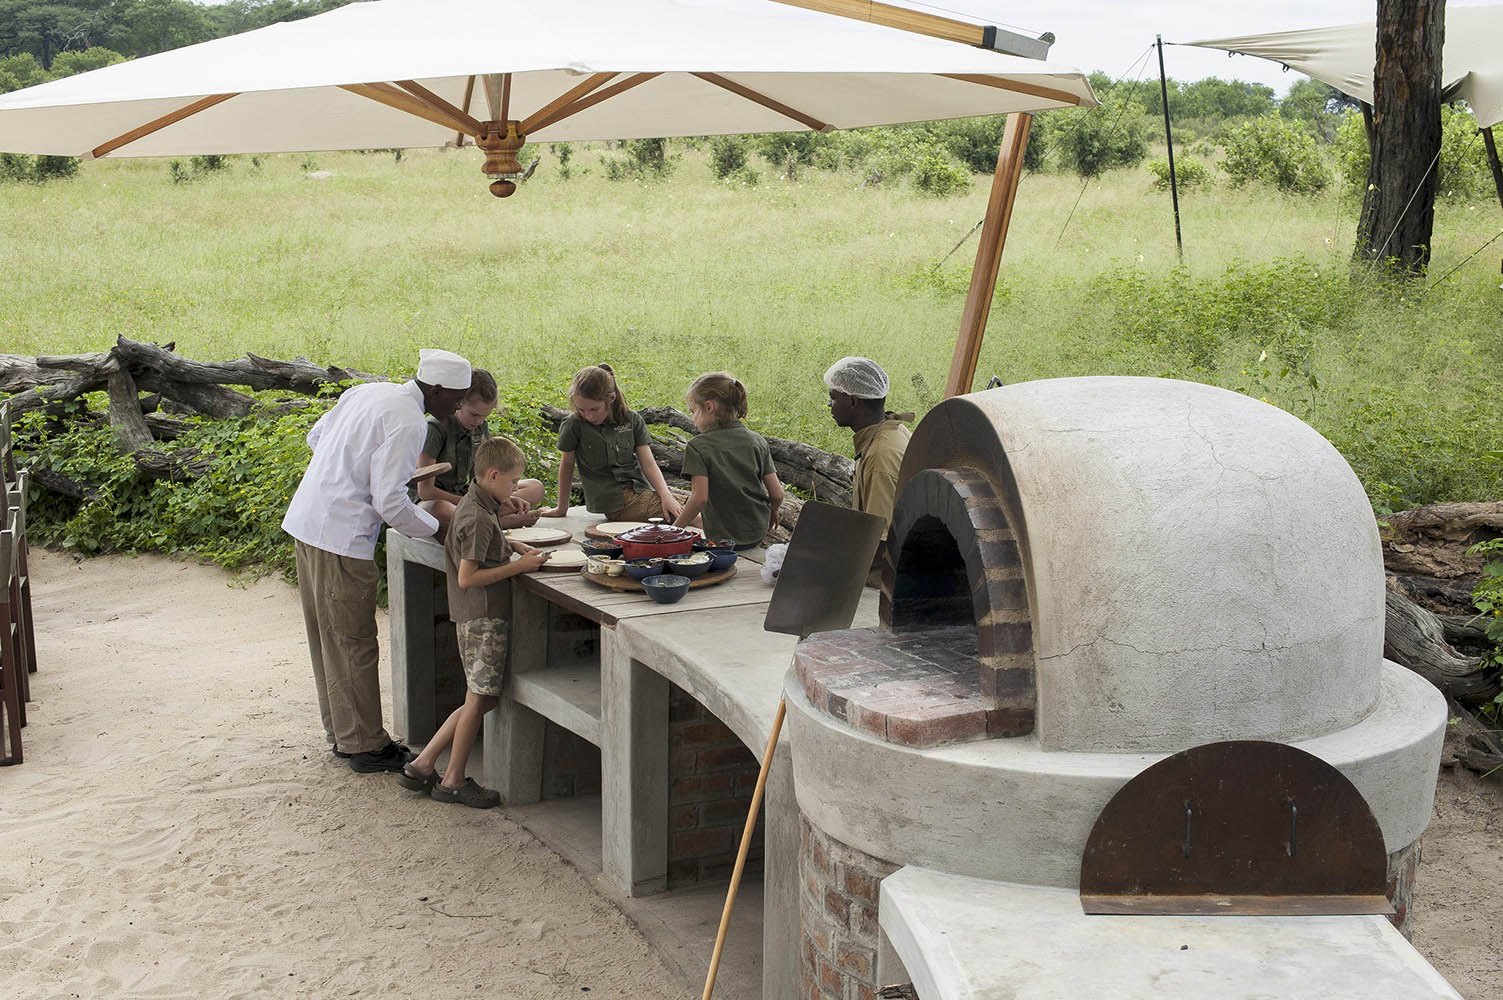 somalisa acacia zimbabwe-lodges-zambia-in-style-safaris-wildlife-africa-hwange-national-park-friendly-staff-chef-cooking